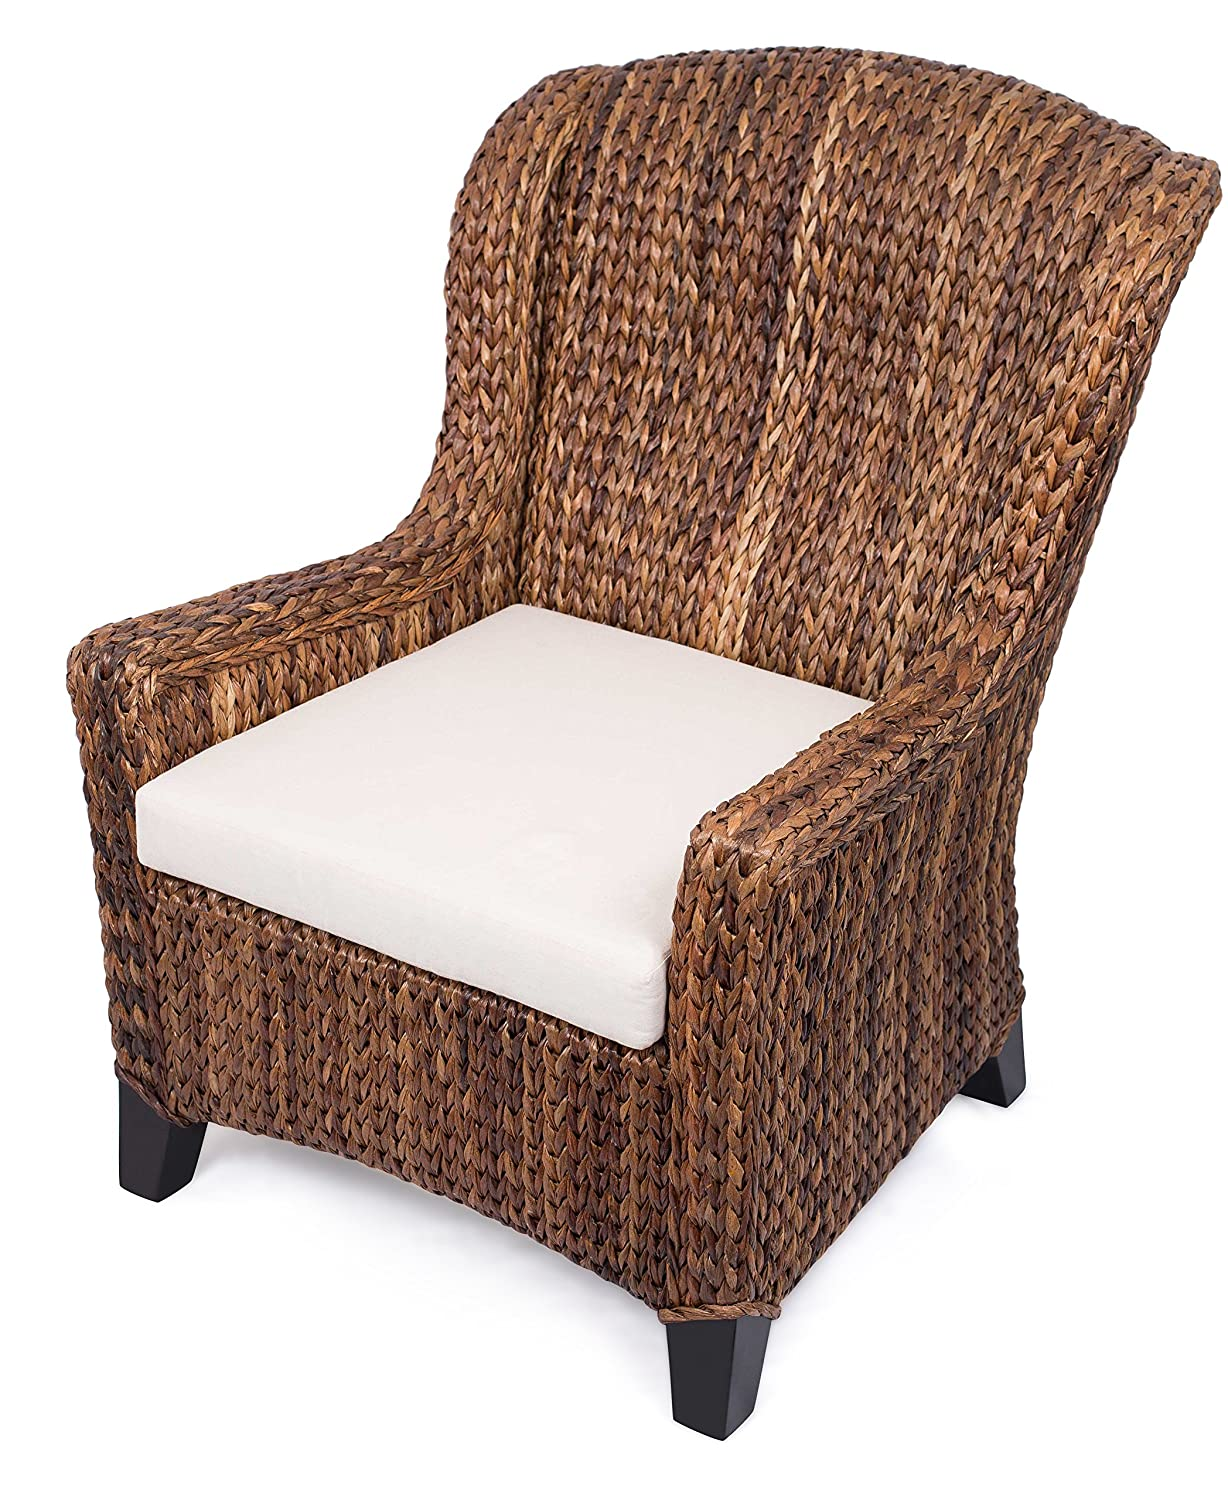 BIRDROCK HOME Abaca and Seagrass Wing Chair with Ottoman Espresso Leg Color Removable Cushion Arms Fully Assembled